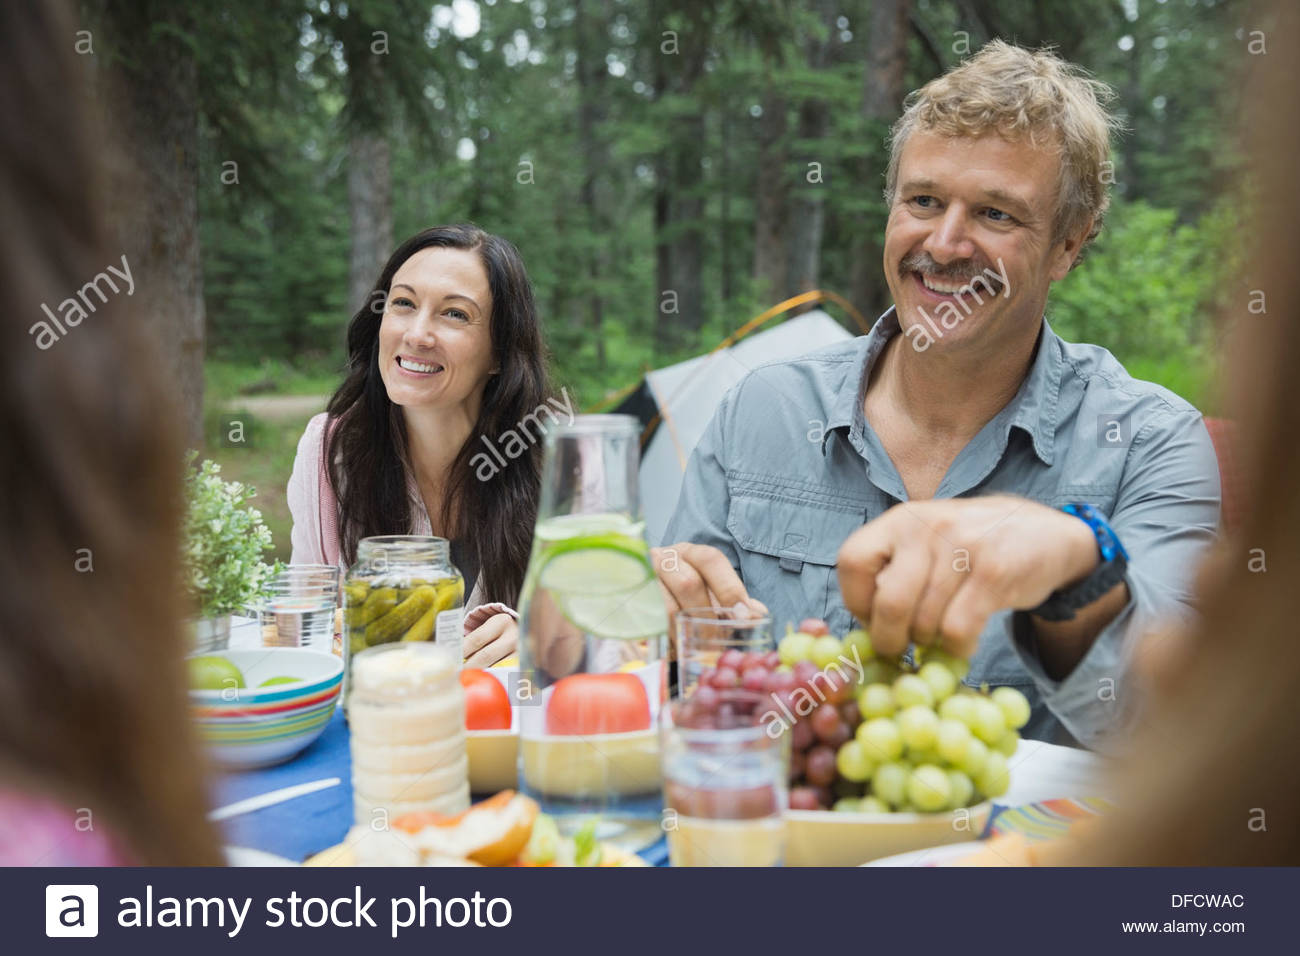 Couple having meal with family at campsite - Stock Image